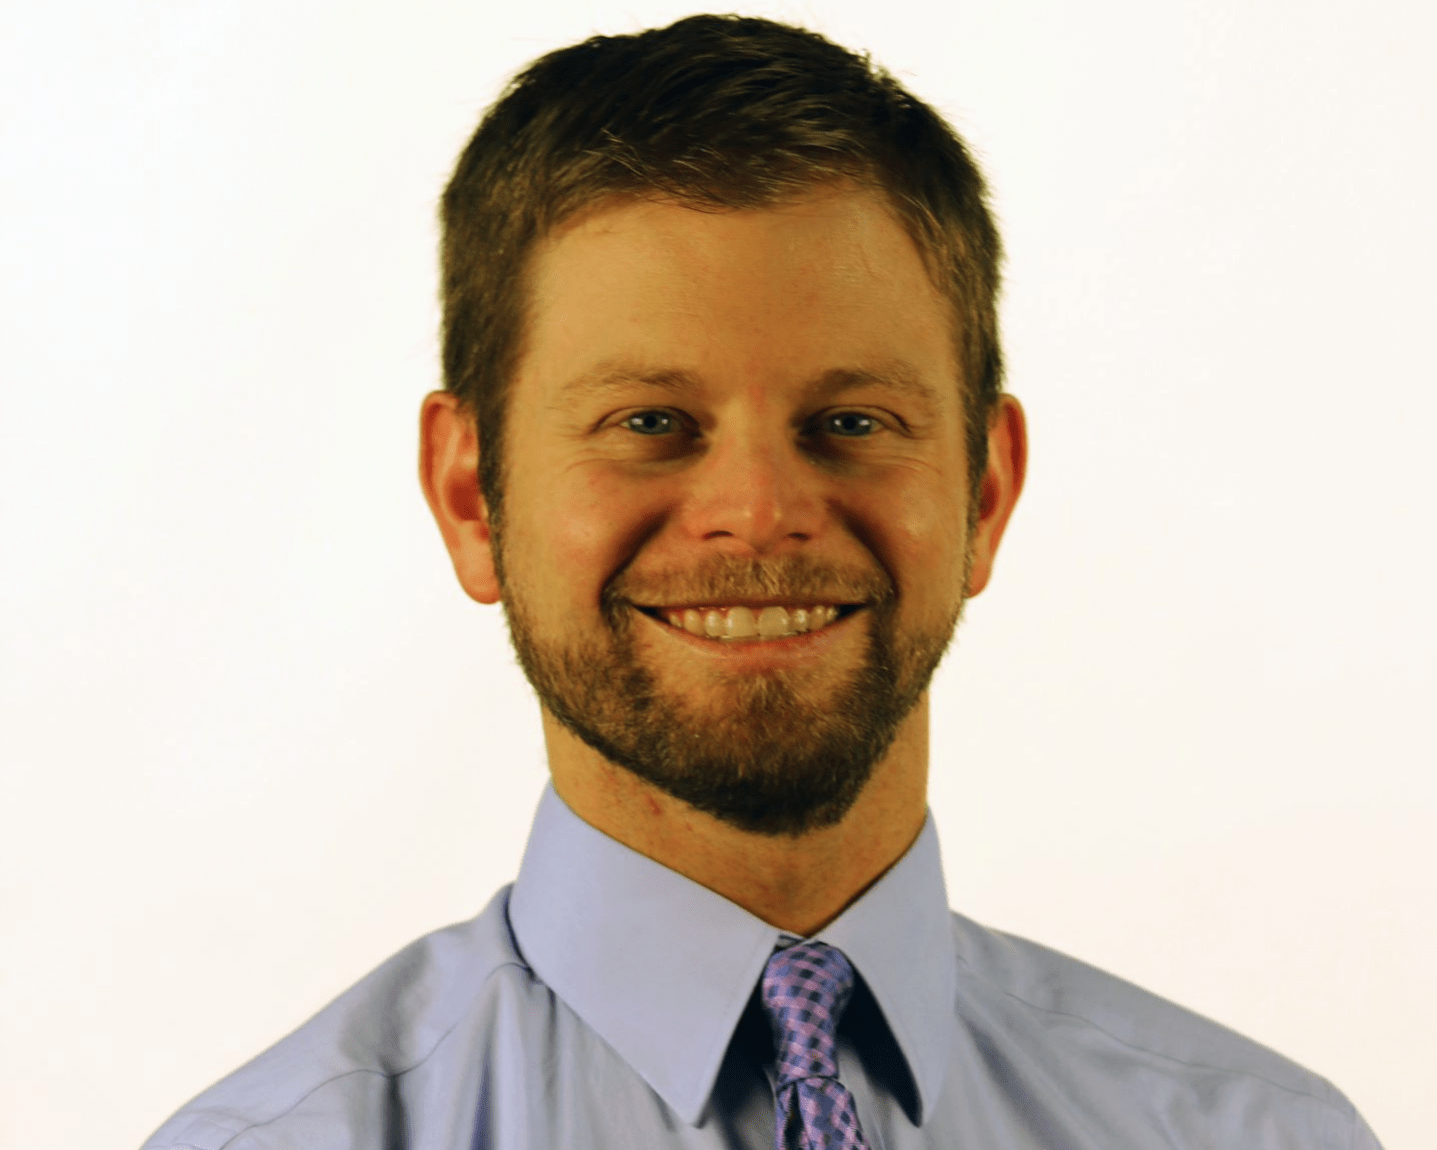 Danny Pape, the new director of Career Services and Student Futures. Photo courtesy of Communique.